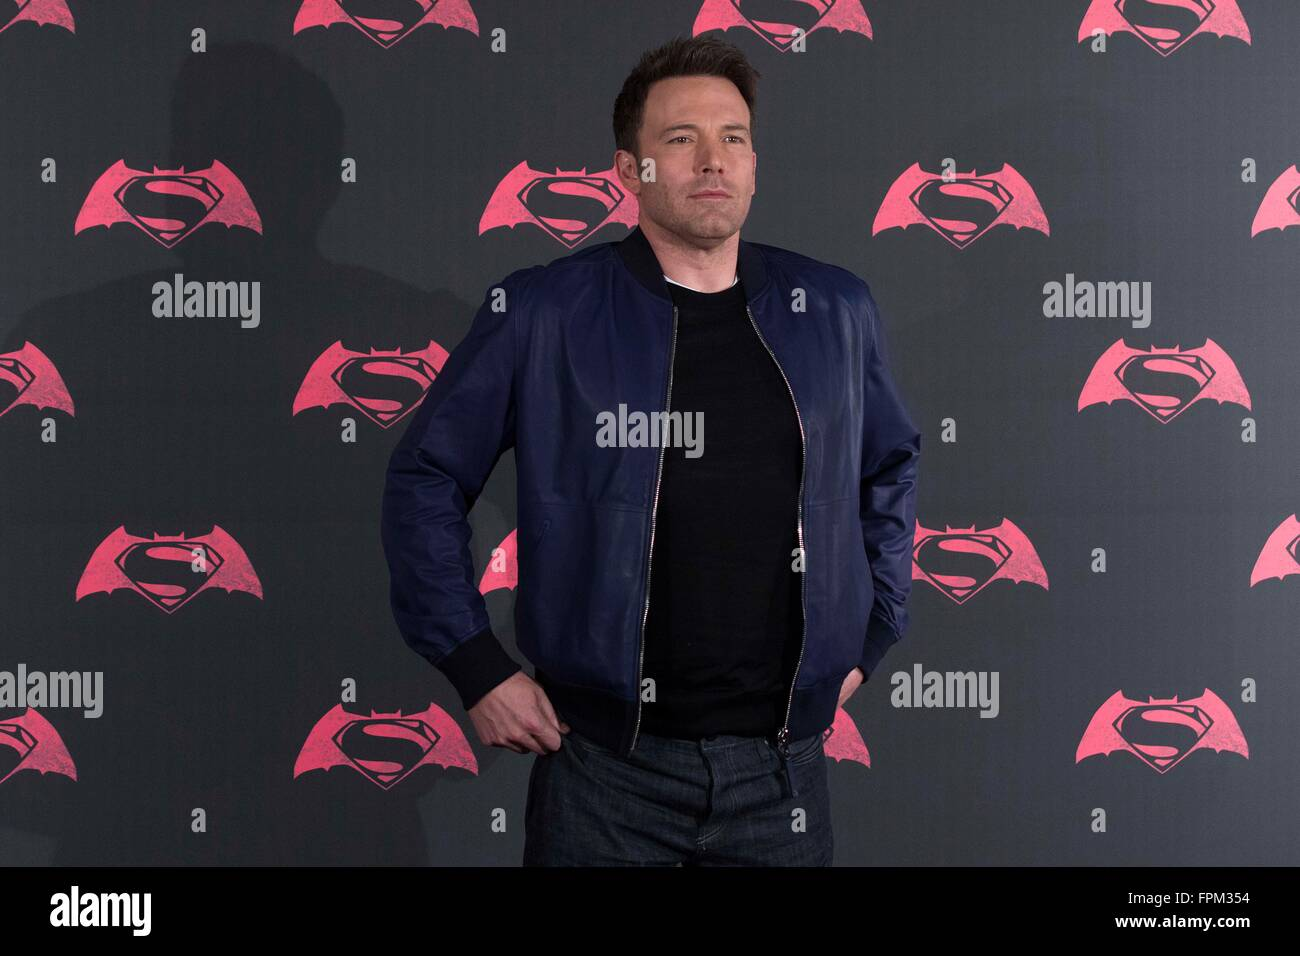 Mexico City, Mexico. 19th Mar, 2016. Actor Ben Affleck poses during the photocall to promote the film Batman vs - Stock Image